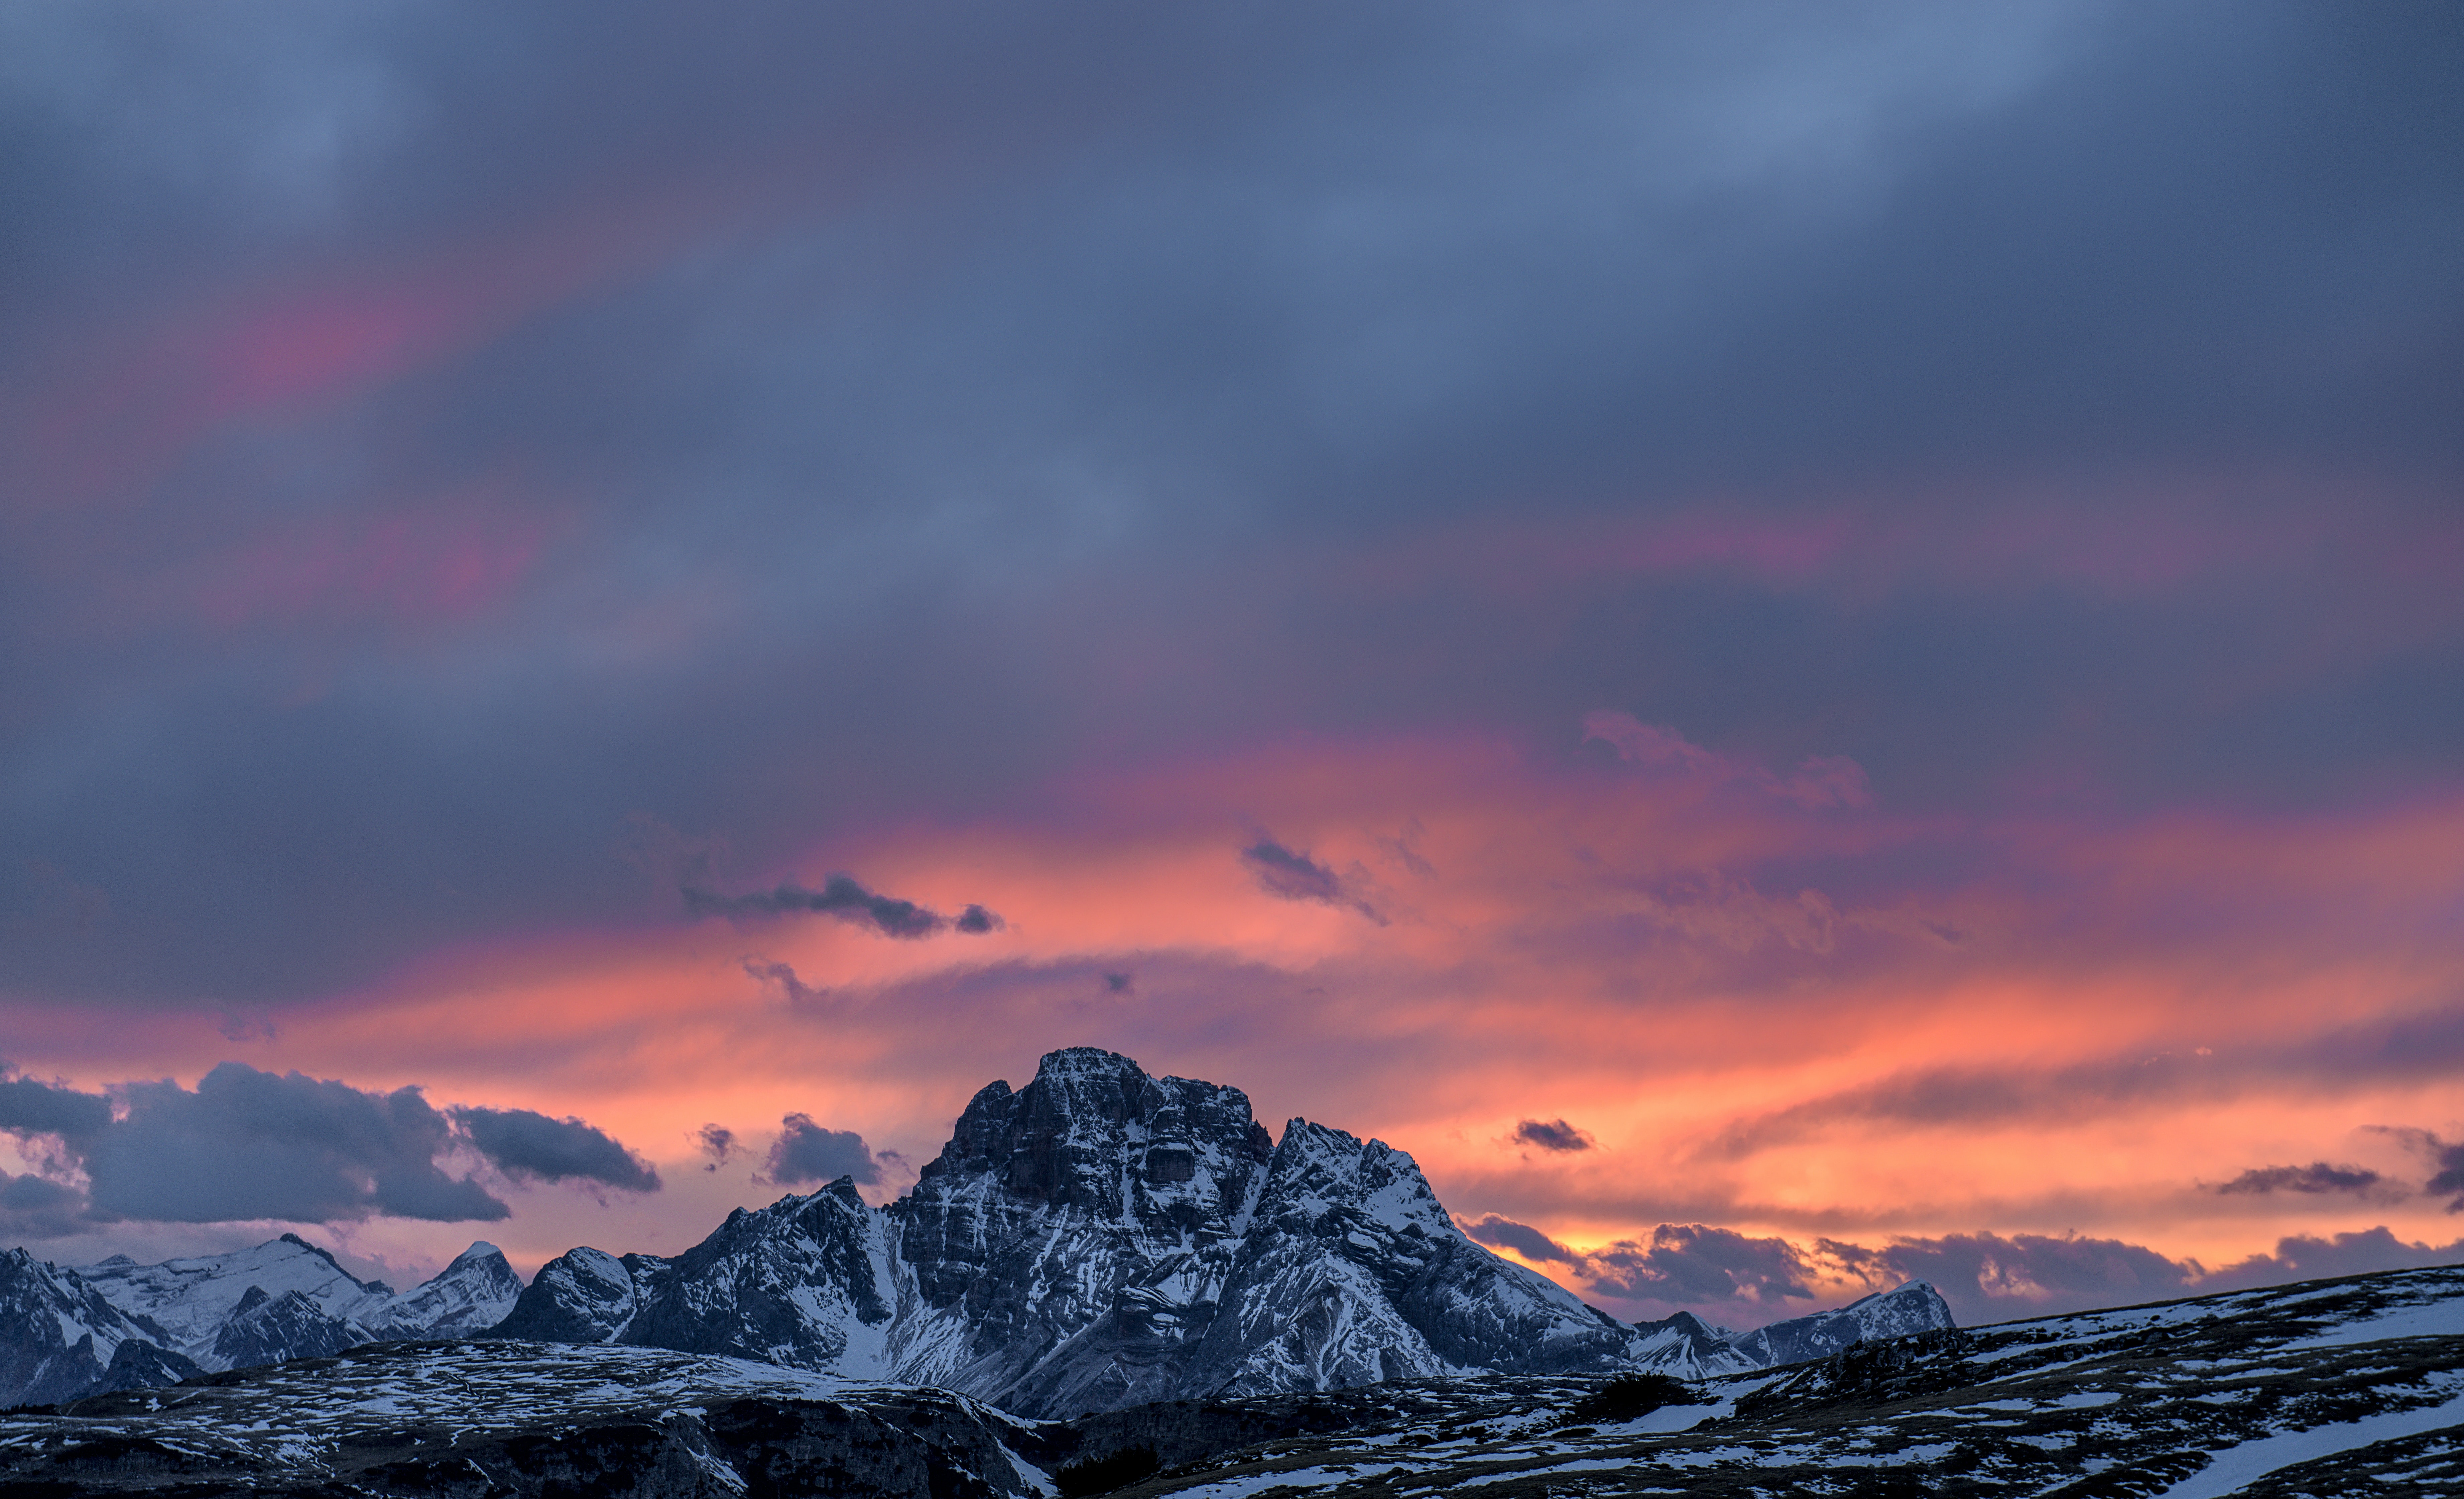 The snow covered Dolomites mountain range during dusk-or-dawn with background of cloudy, pink sky